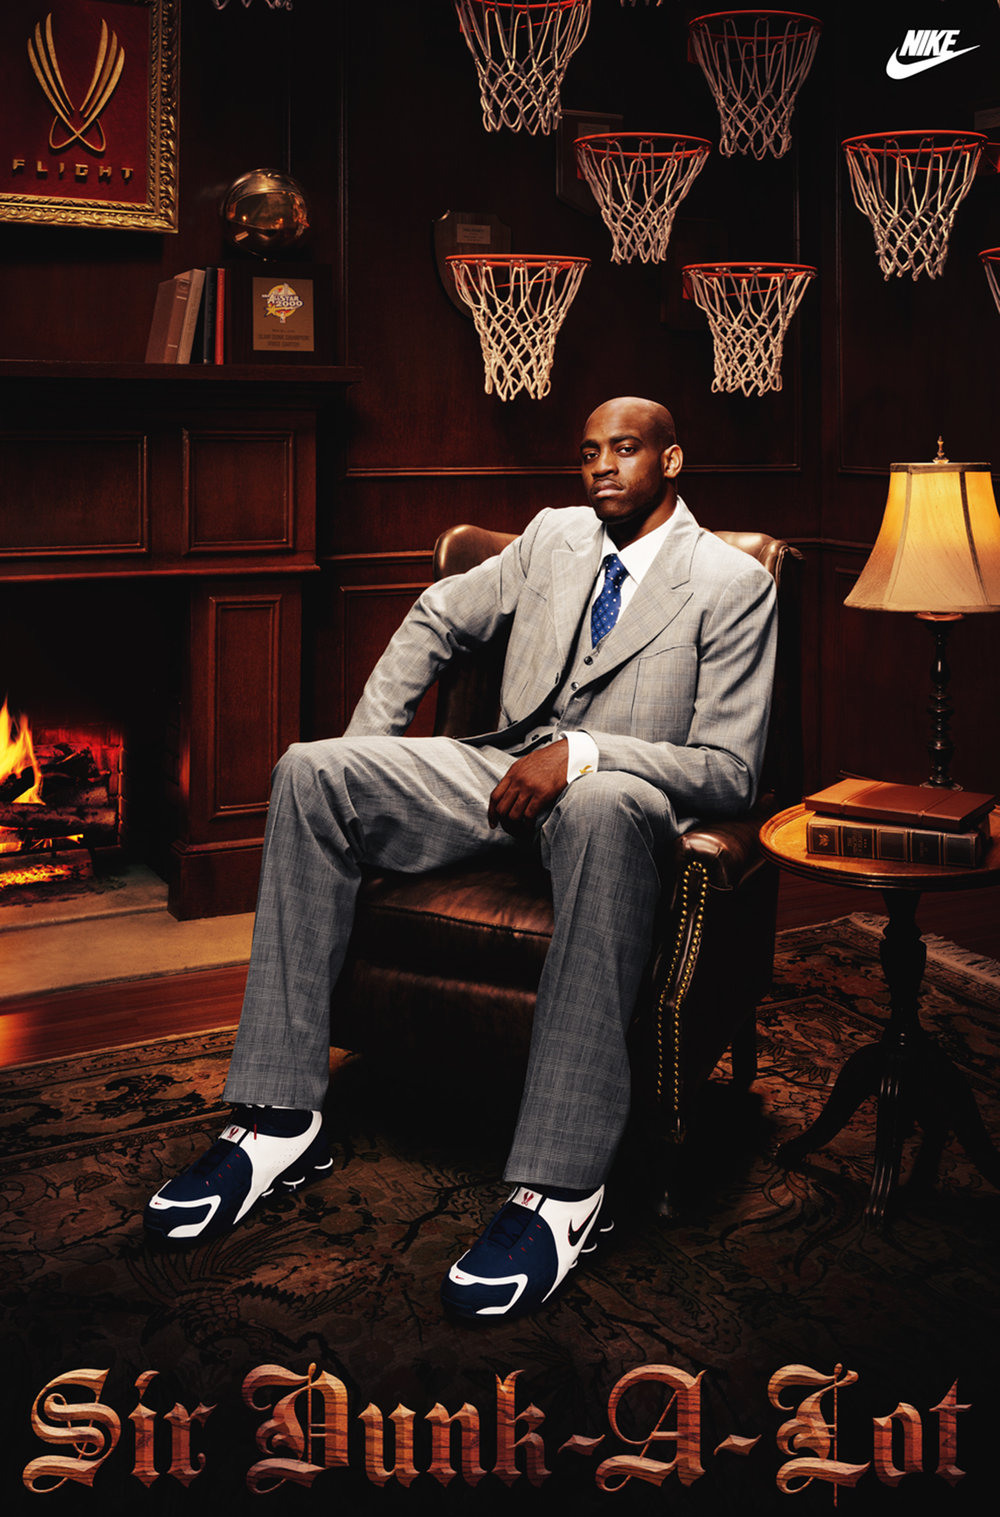 Vince Carter for Nike - Los Angeles, CA